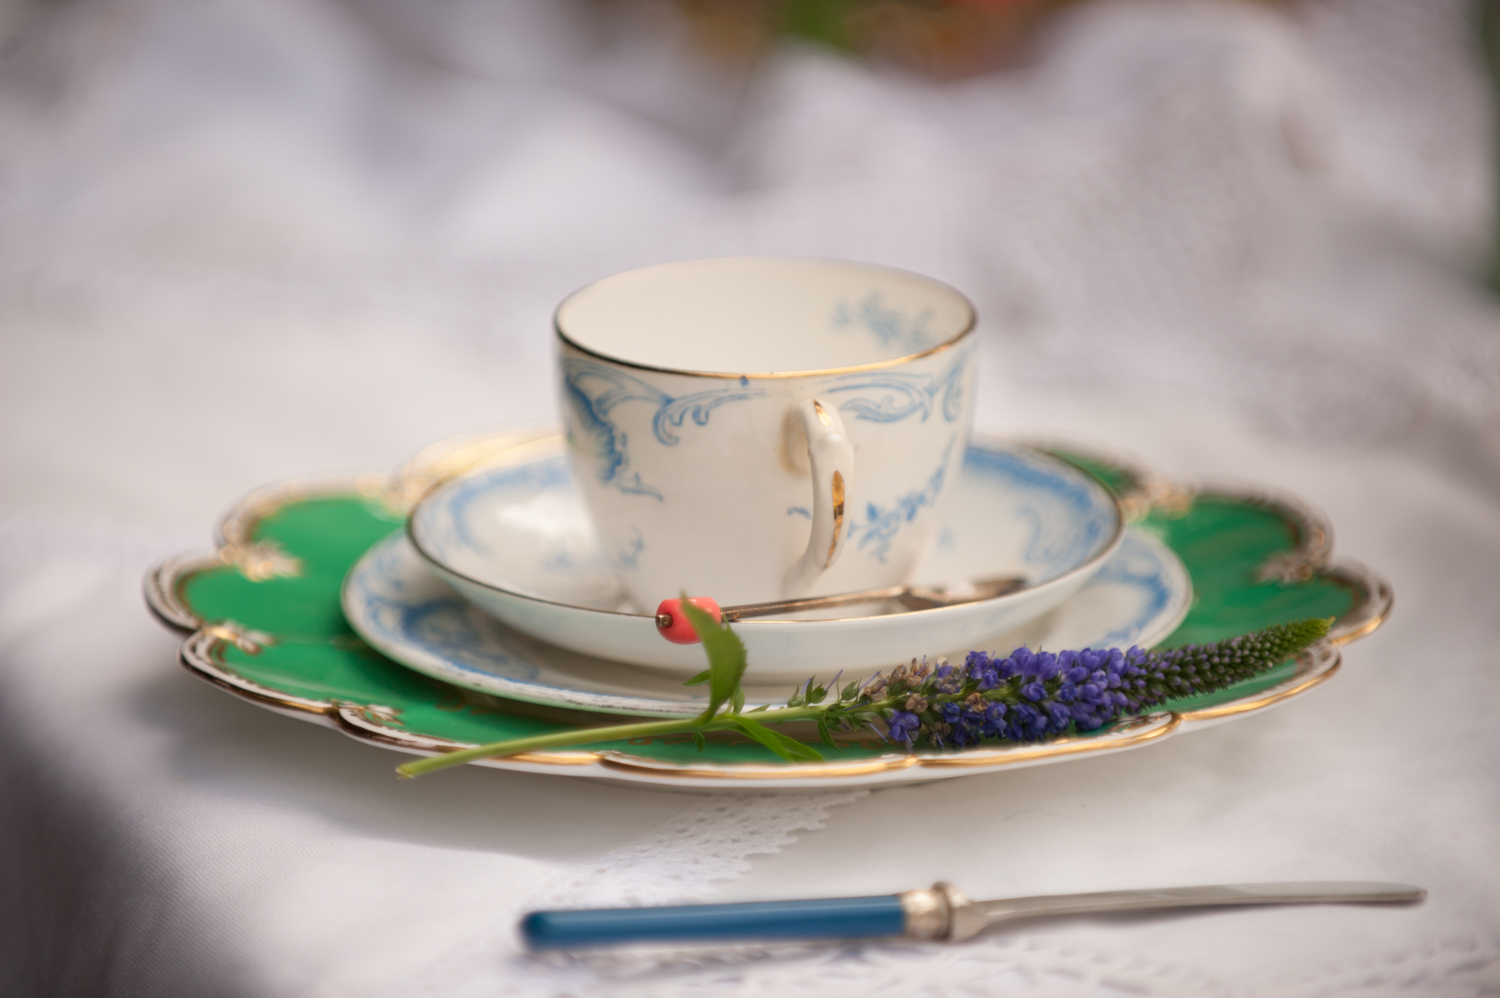 Vintage Tea Cup, Saucer and Plate.